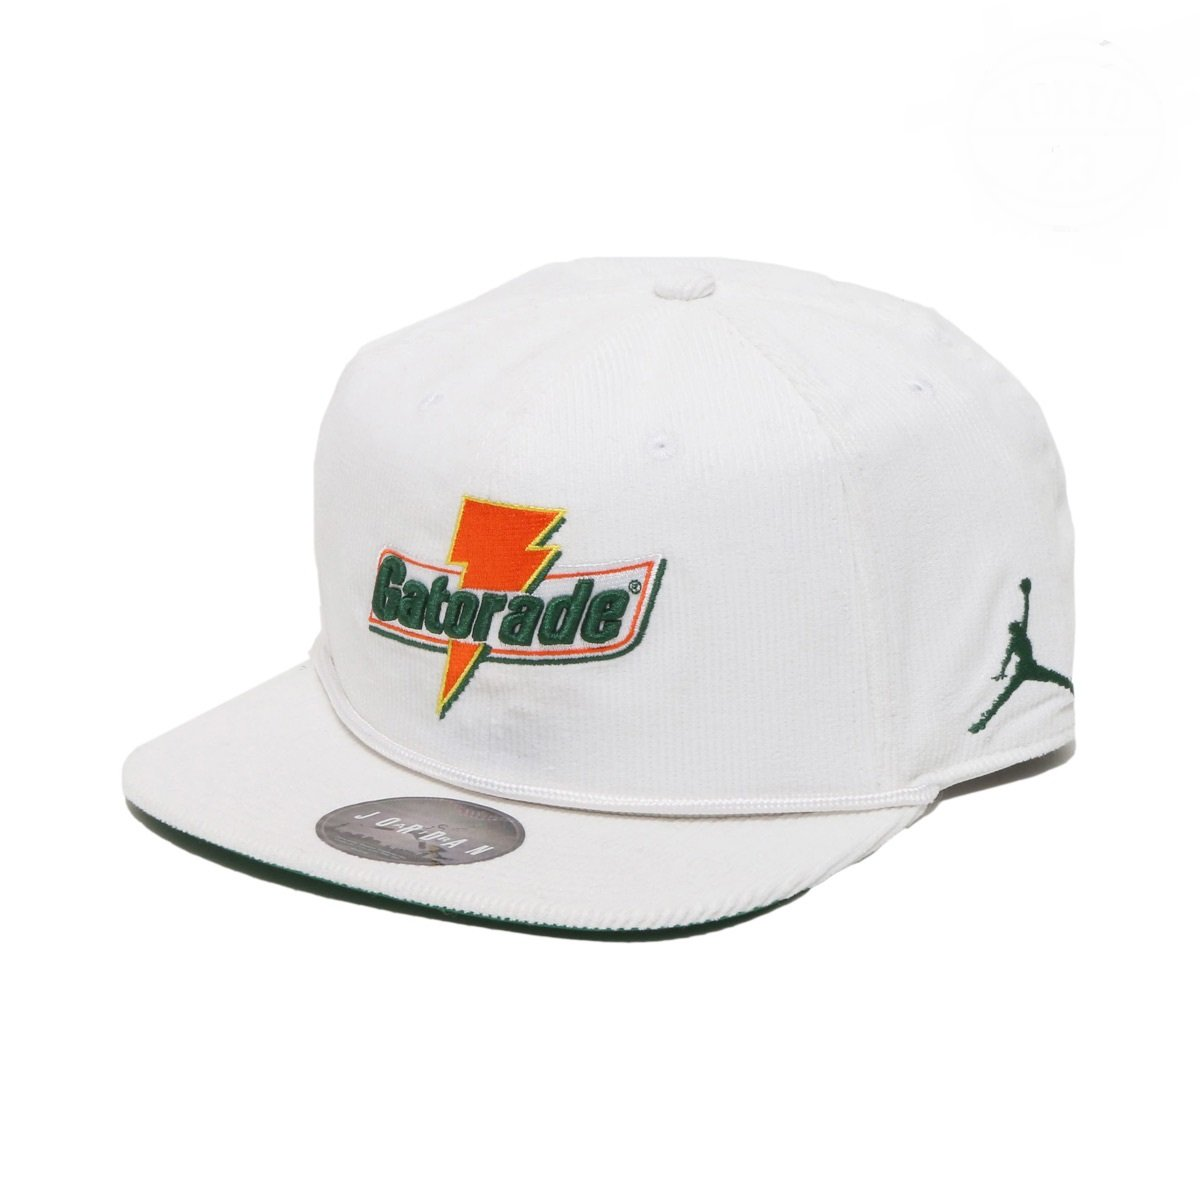 info for 22cd7 aebee Amazon.com  NIKE Air Jordan Pro Like Mike Baseball Cap Adult Adjustable  White Orange Green (One Size Fits Most)  Sports   Outdoors